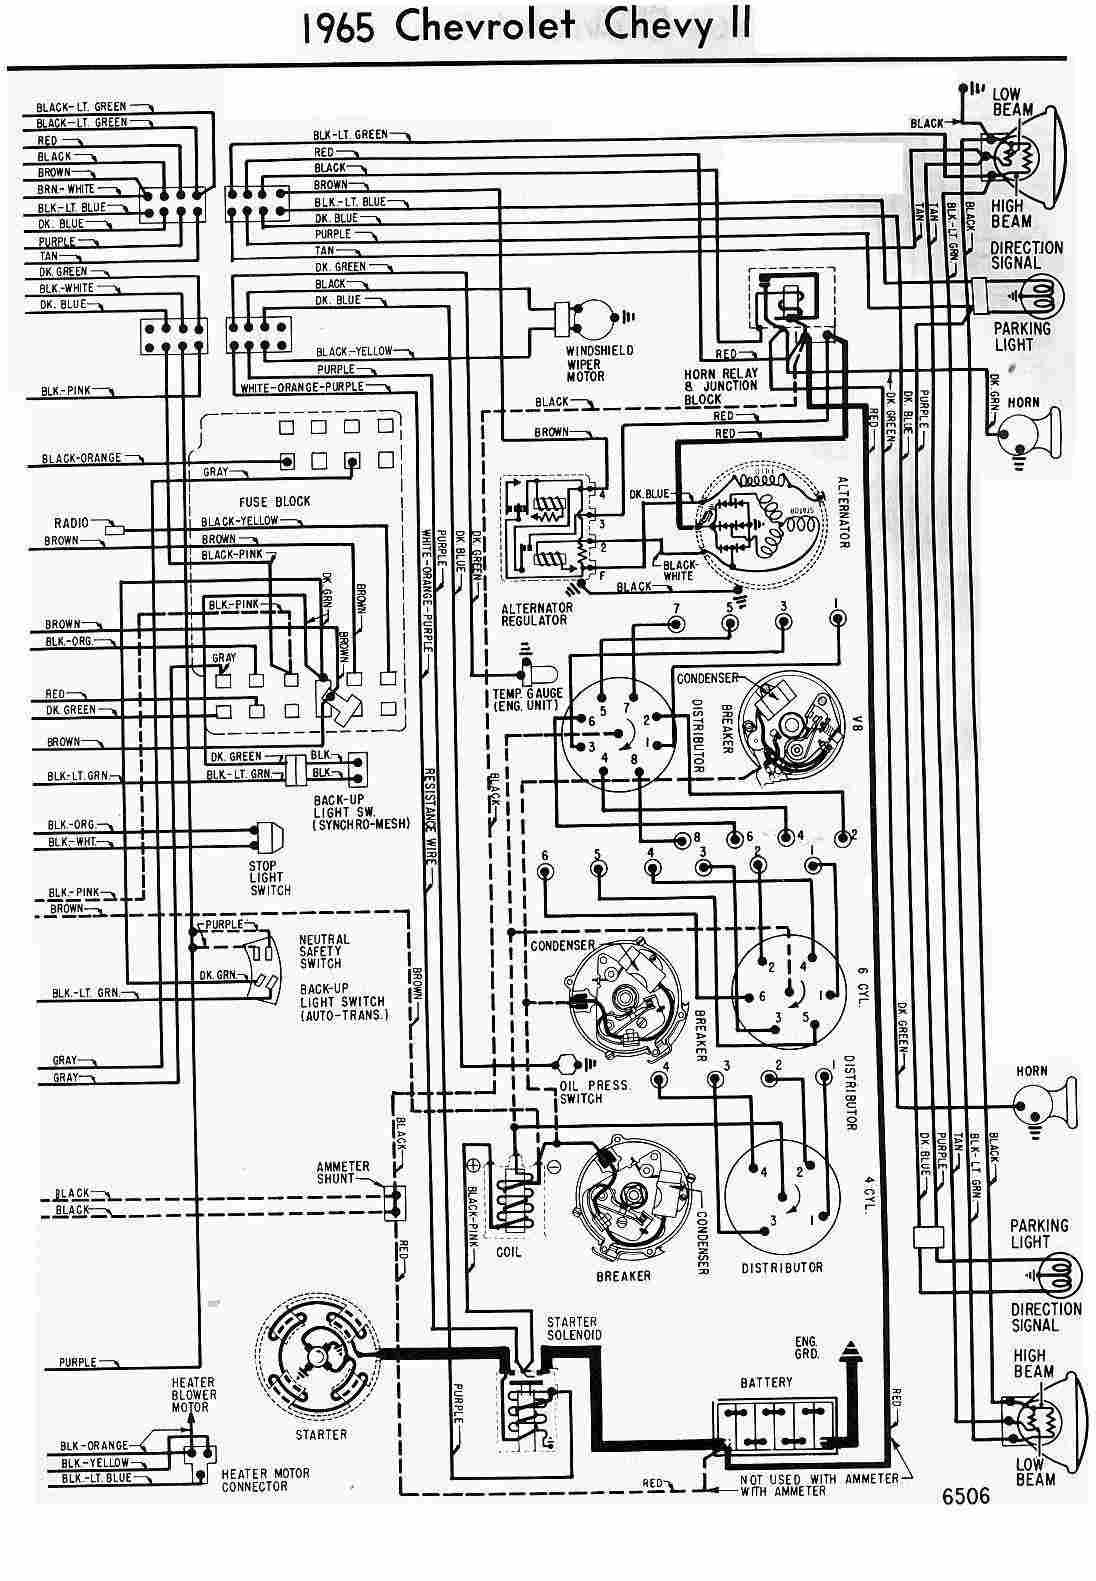 wiring diagram diagram of 1965 chevrolet chevy ii?t=1508393184 chevrolet car manuals, wiring diagrams pdf & fault codes chevrolet wiring diagrams free download at n-0.co